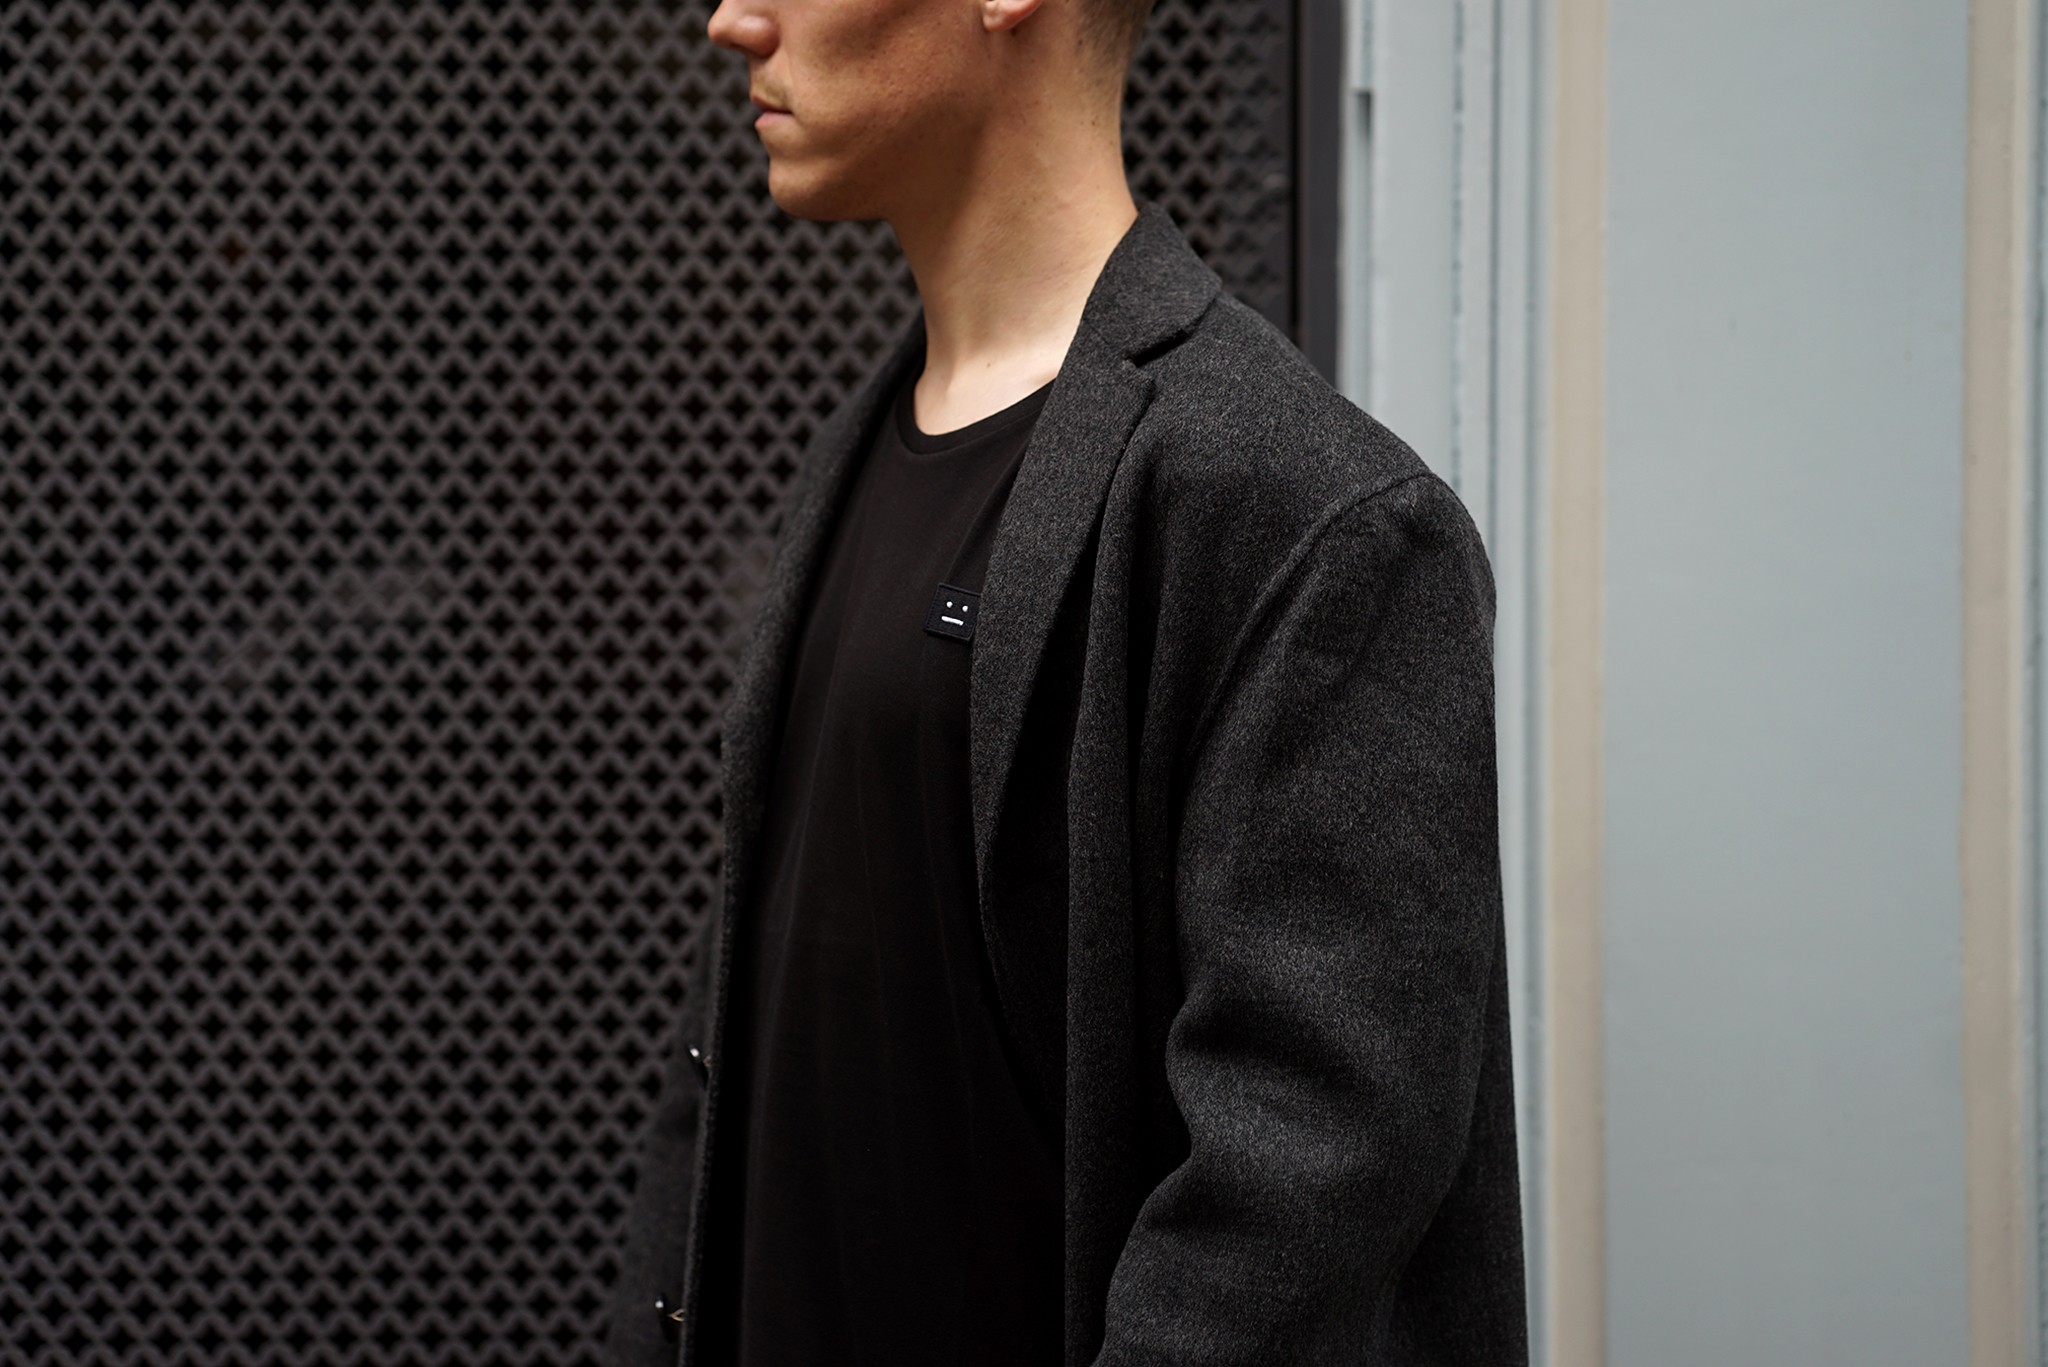 Acne studios fall winter delivery 1